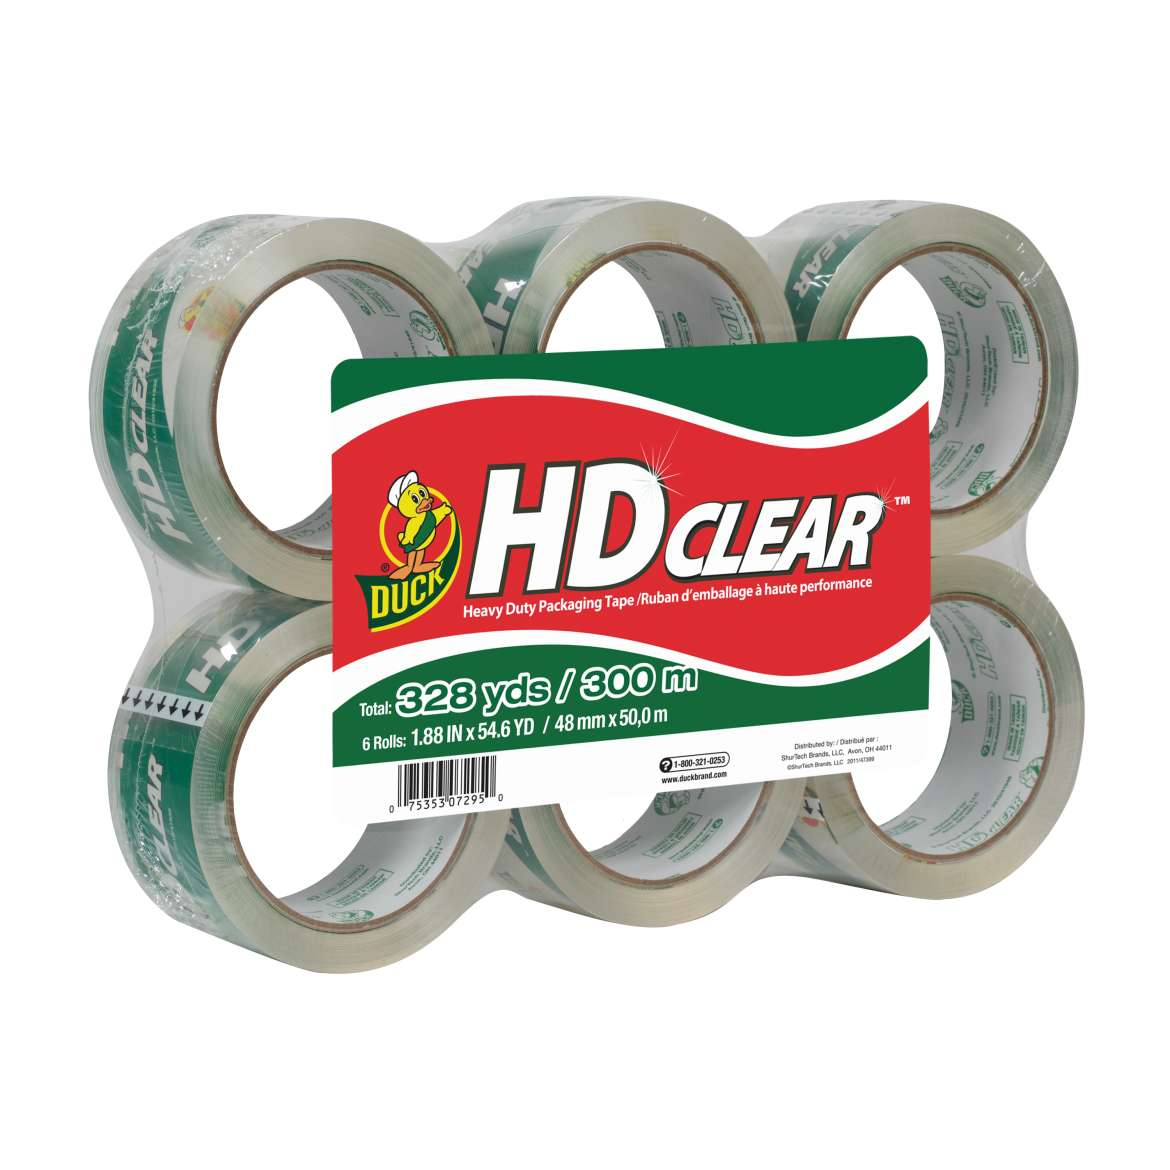 HD Clear™ Heavy Duty Packaging Tape - Clear, 6 pk, 1.88 in. x 54.6 yd. Image